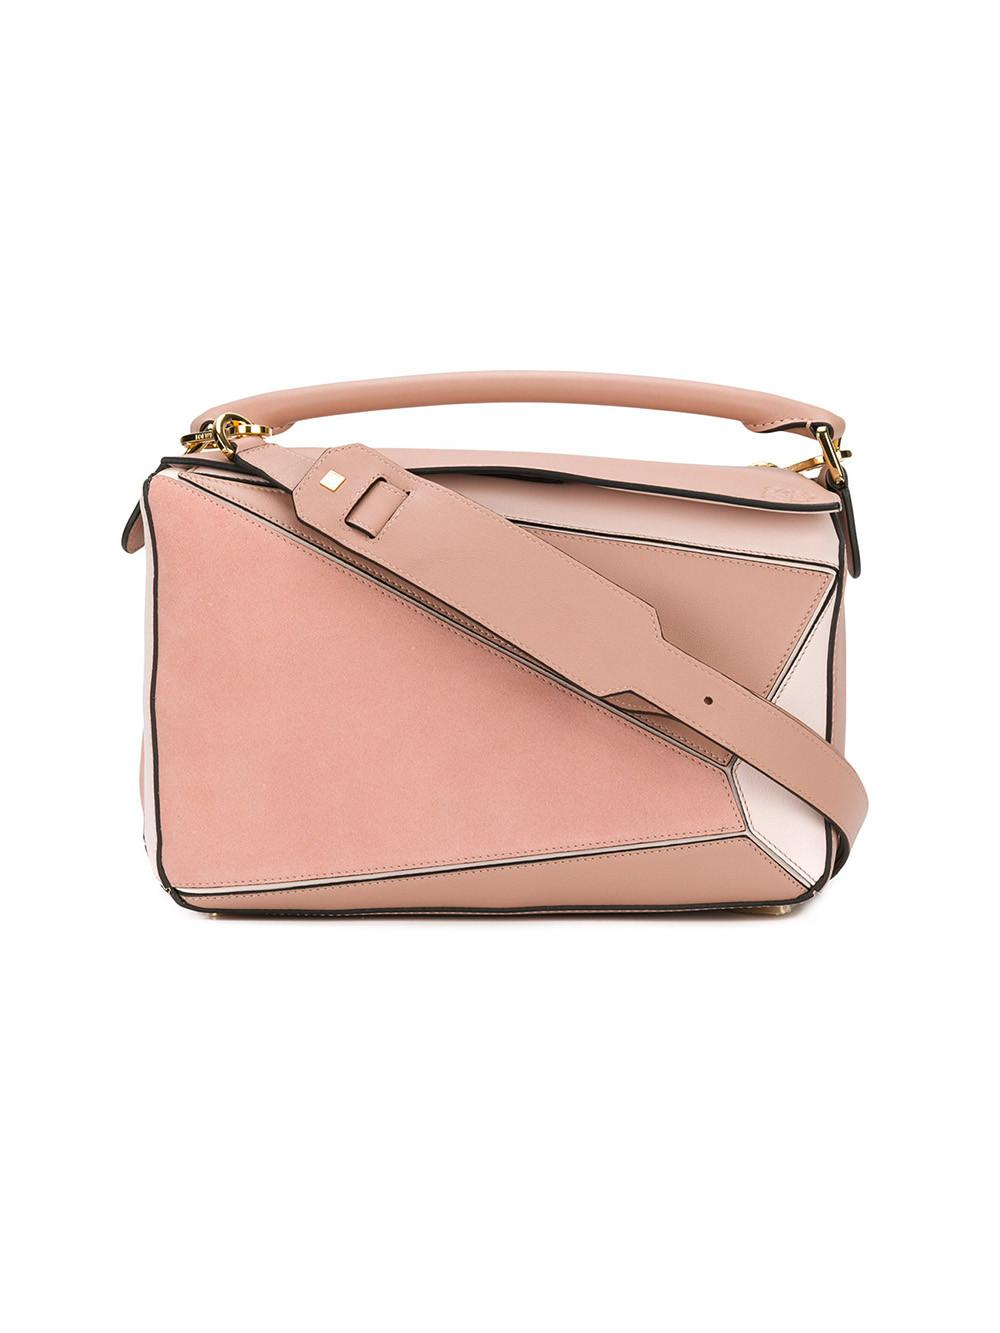 65e69431accb Loewe Small Puzzle Bag - Save 1% - Lyst